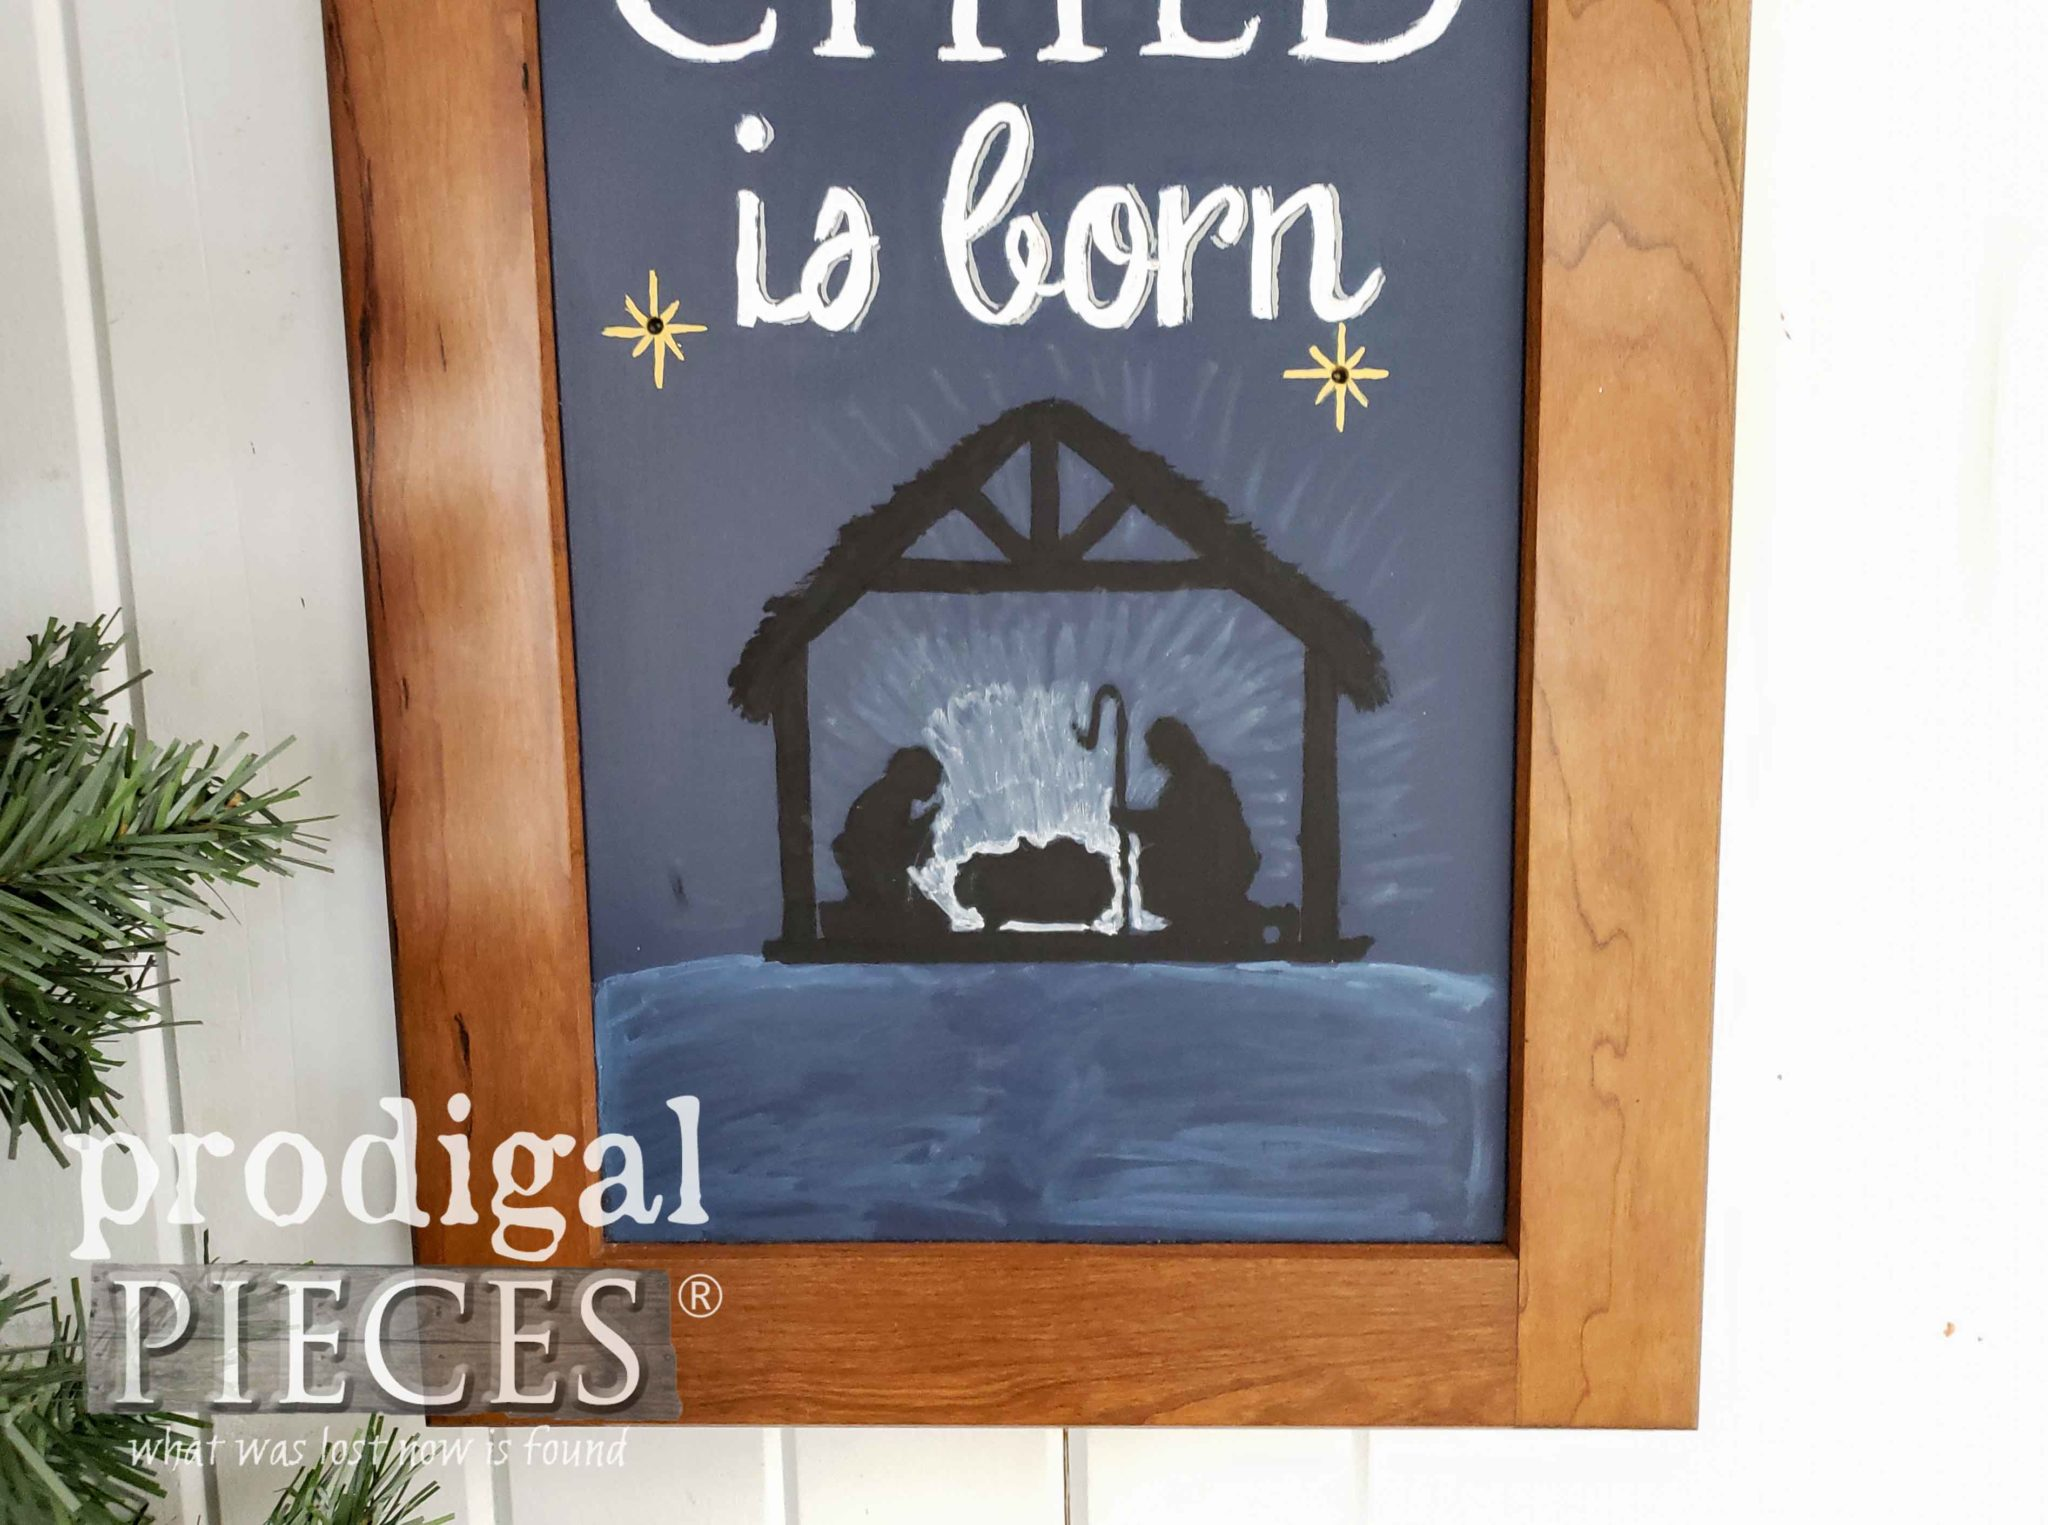 Handmade Nativity Wall Art by a Tween | Prodigal Pieces | prodigalpieces.com